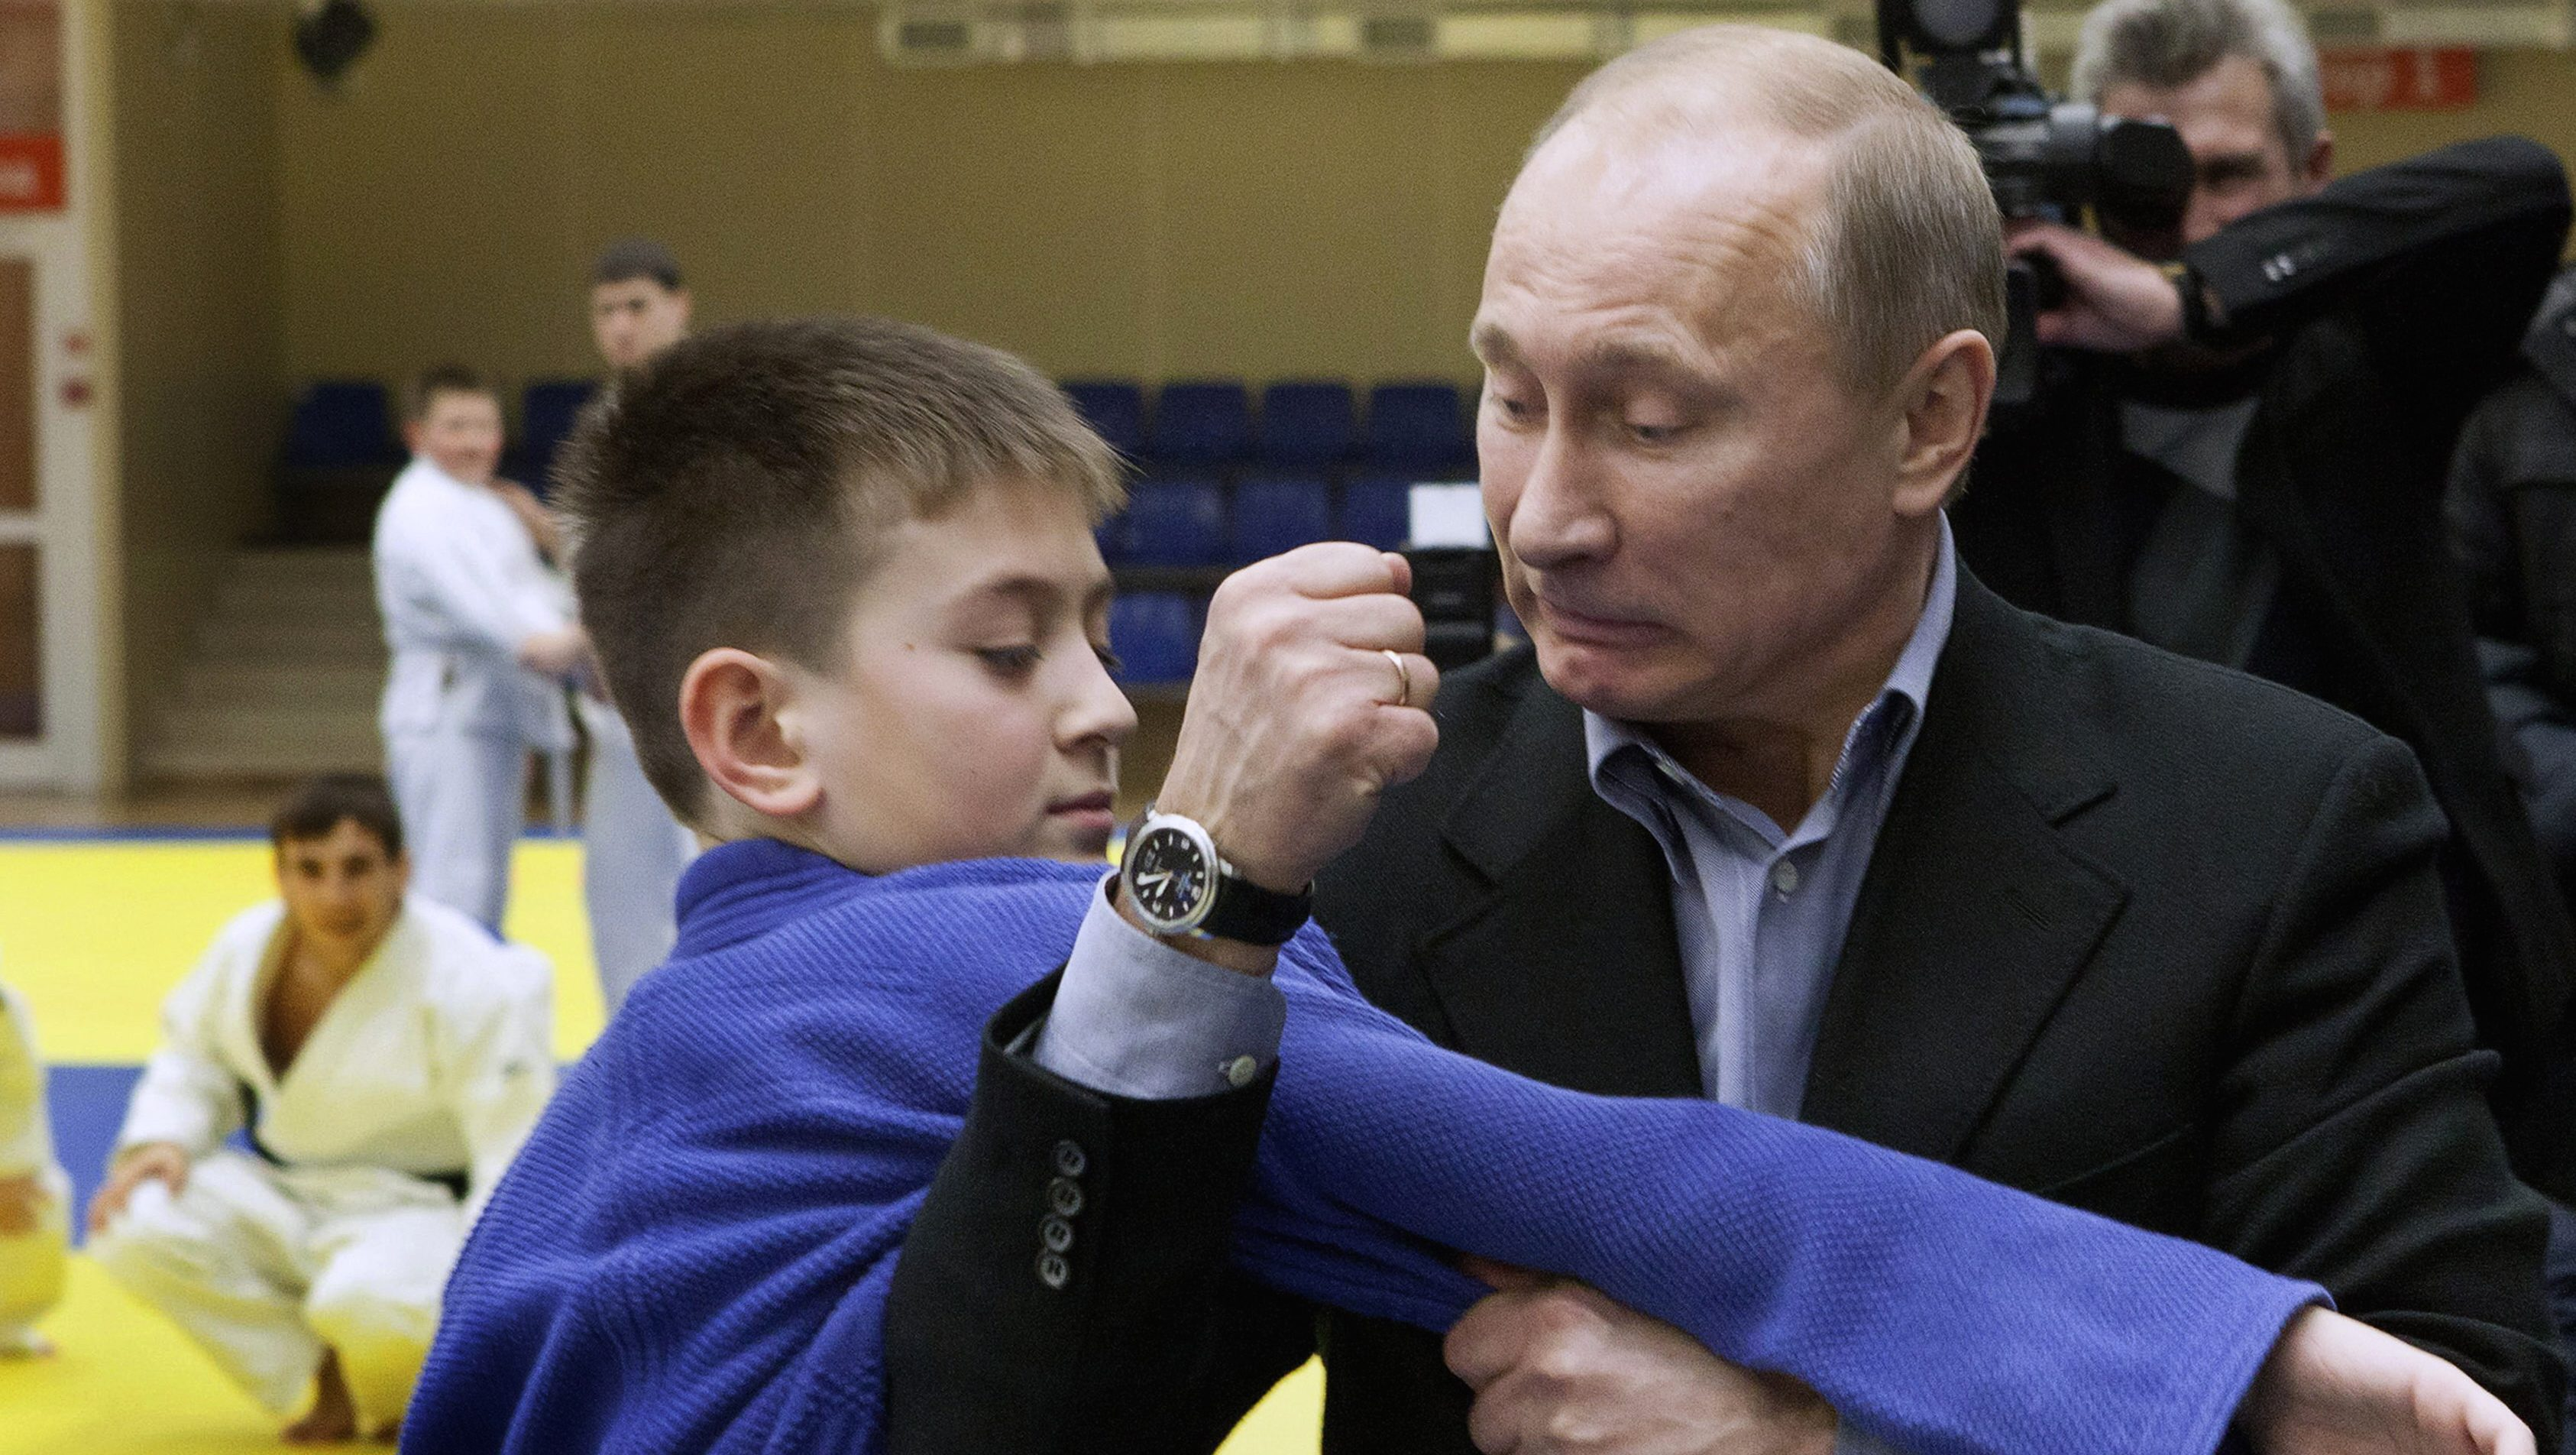 Russian Prime Minister Vladimir Putin instructs a trainee during a judo demonstration at a regional judo centre in the city of Kemerovo